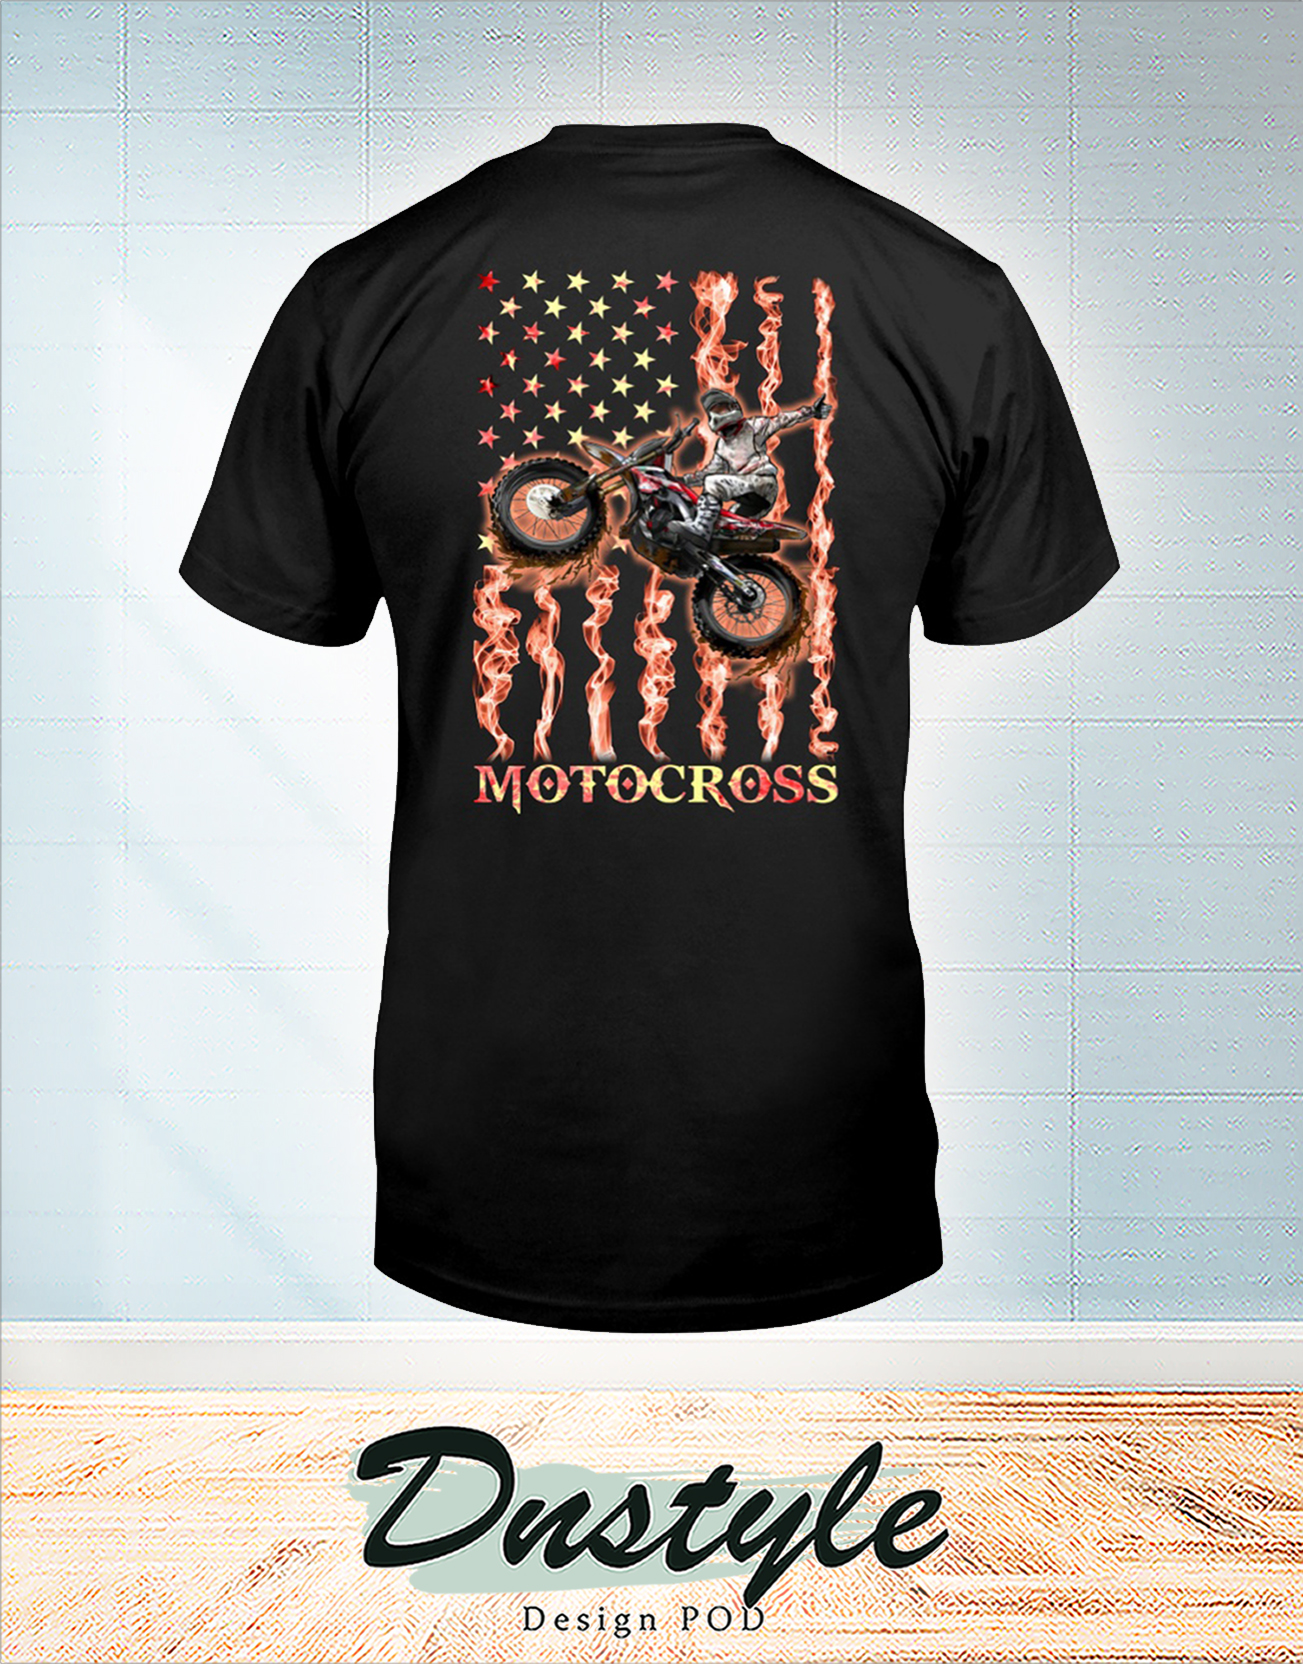 Motocross fire american flag 4th of july t-shirt